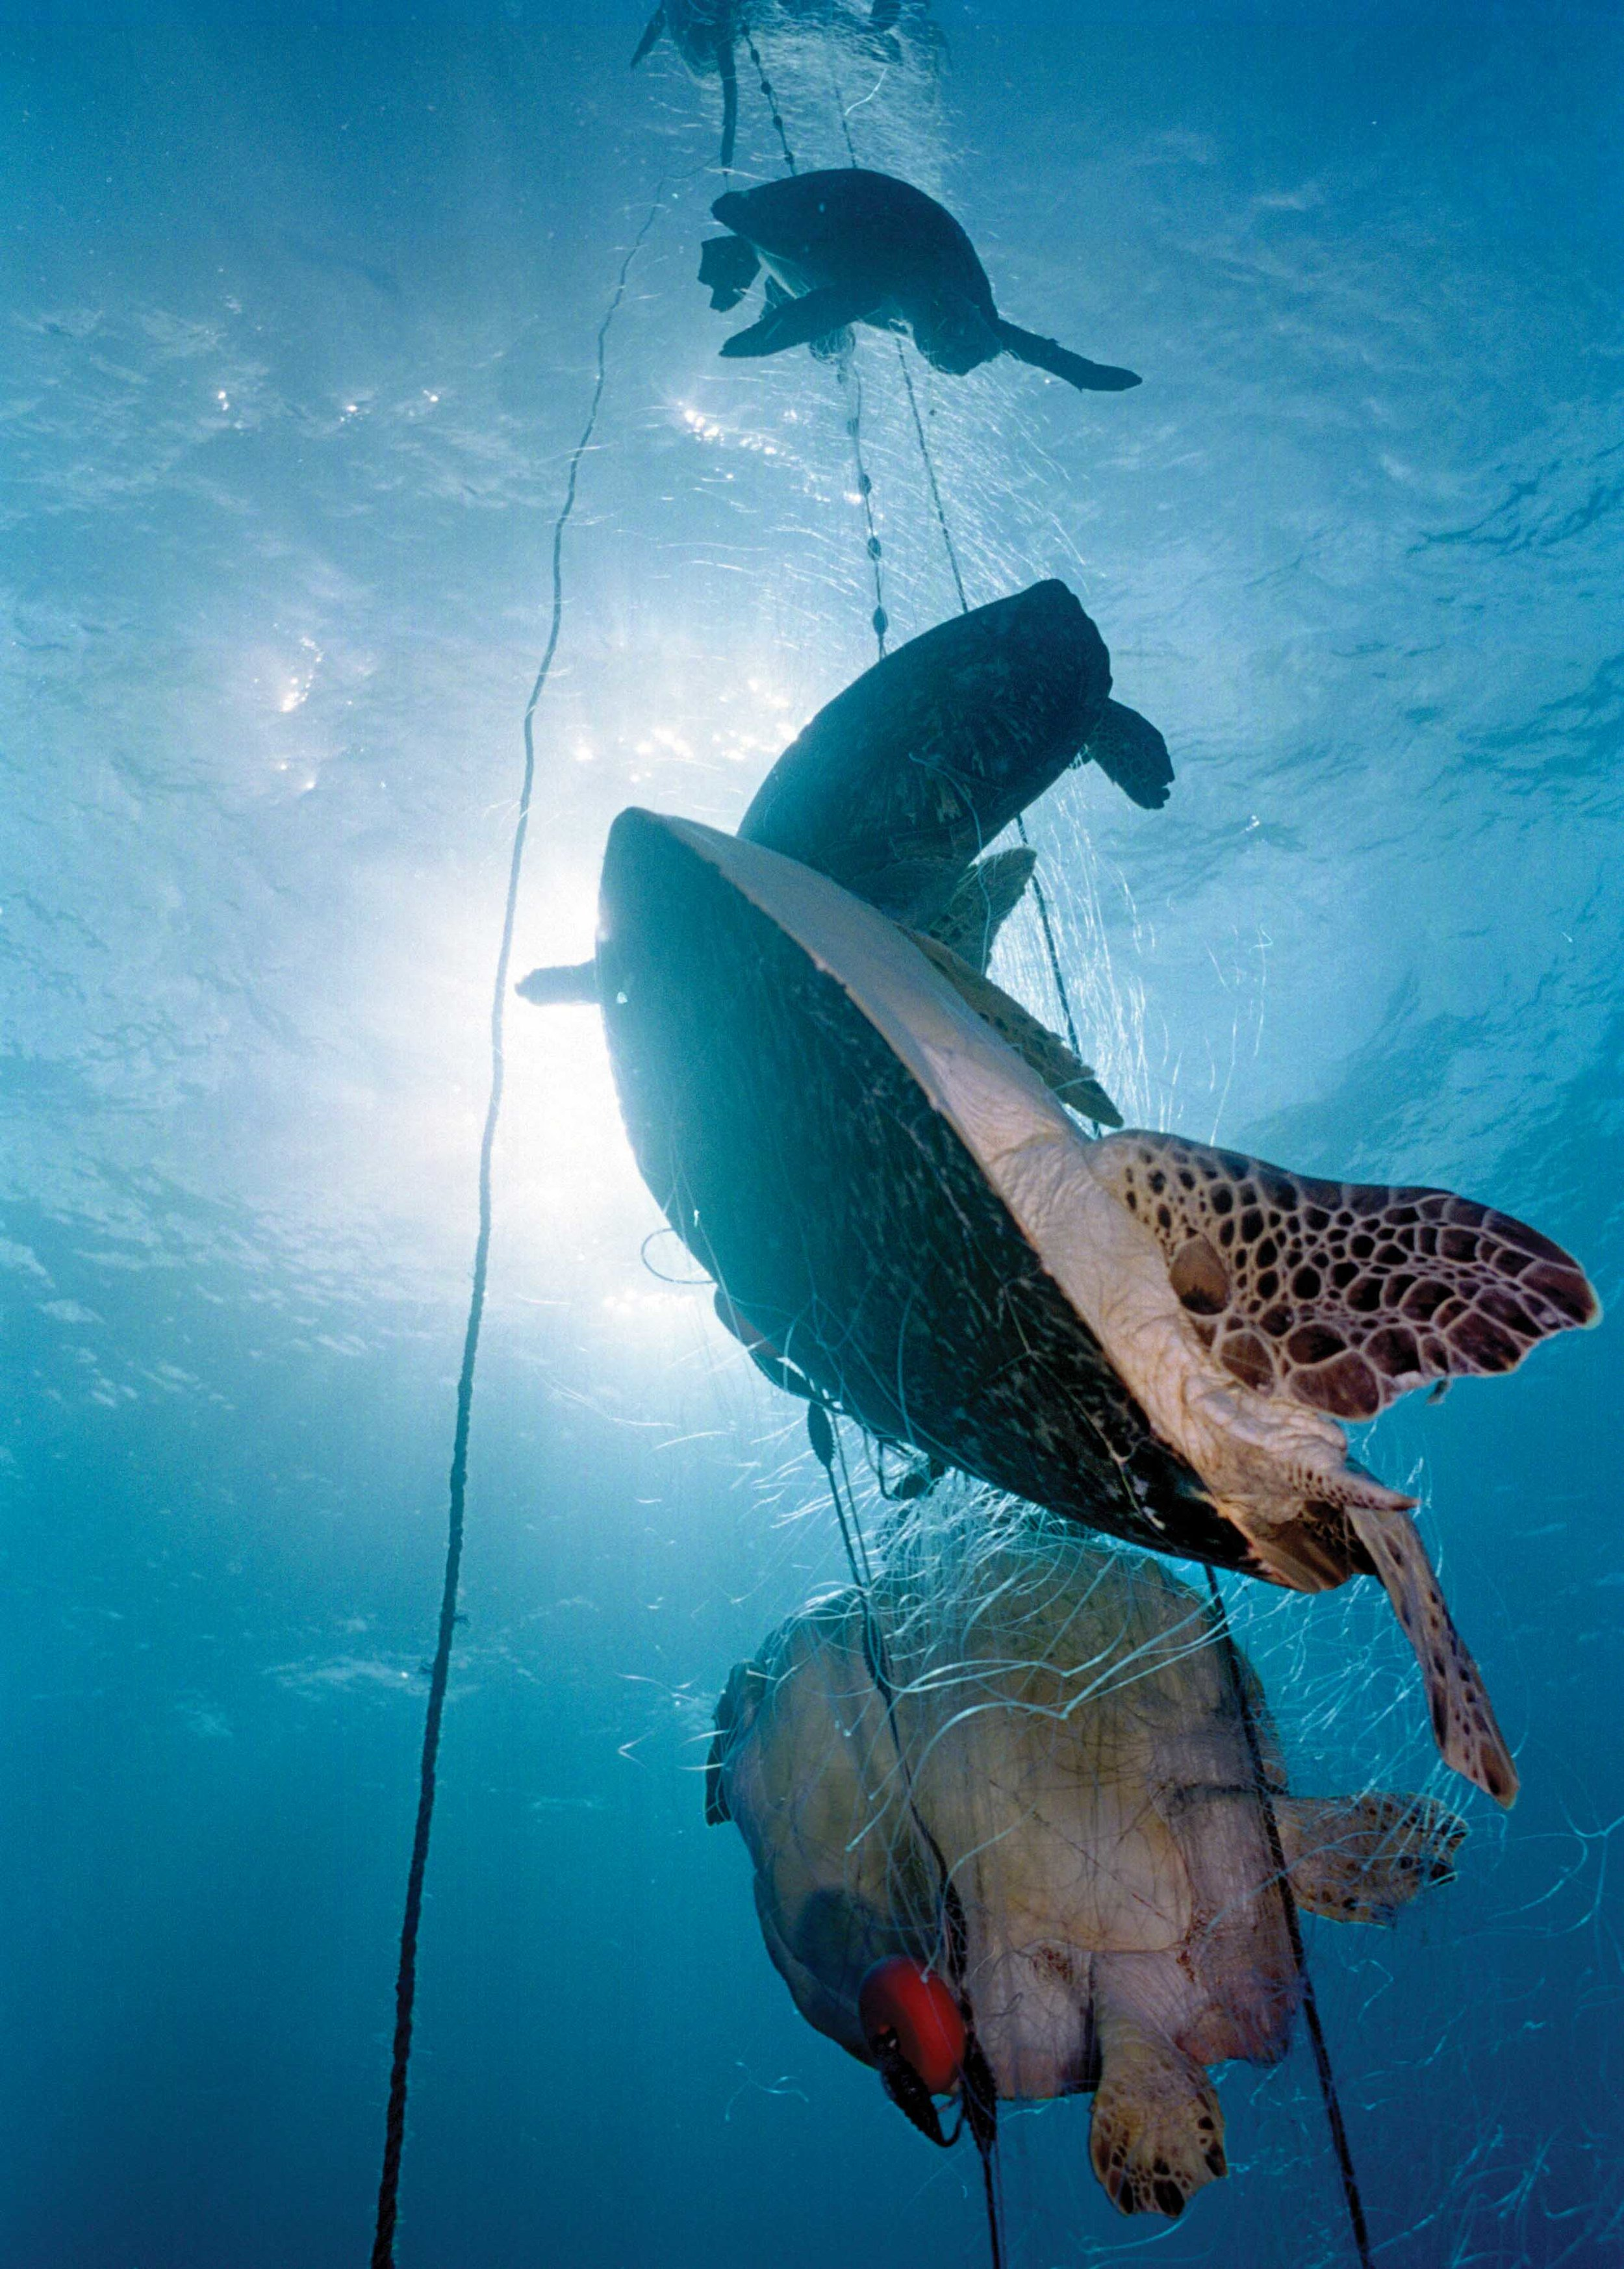 Bycatch was consistently ranked as one of the greatest threats to sea turtle populations globally. Here, several green turtles were accidentally captured by a single net off the coast of Brazil. © Projeto Tamar Brazil – Image Bank